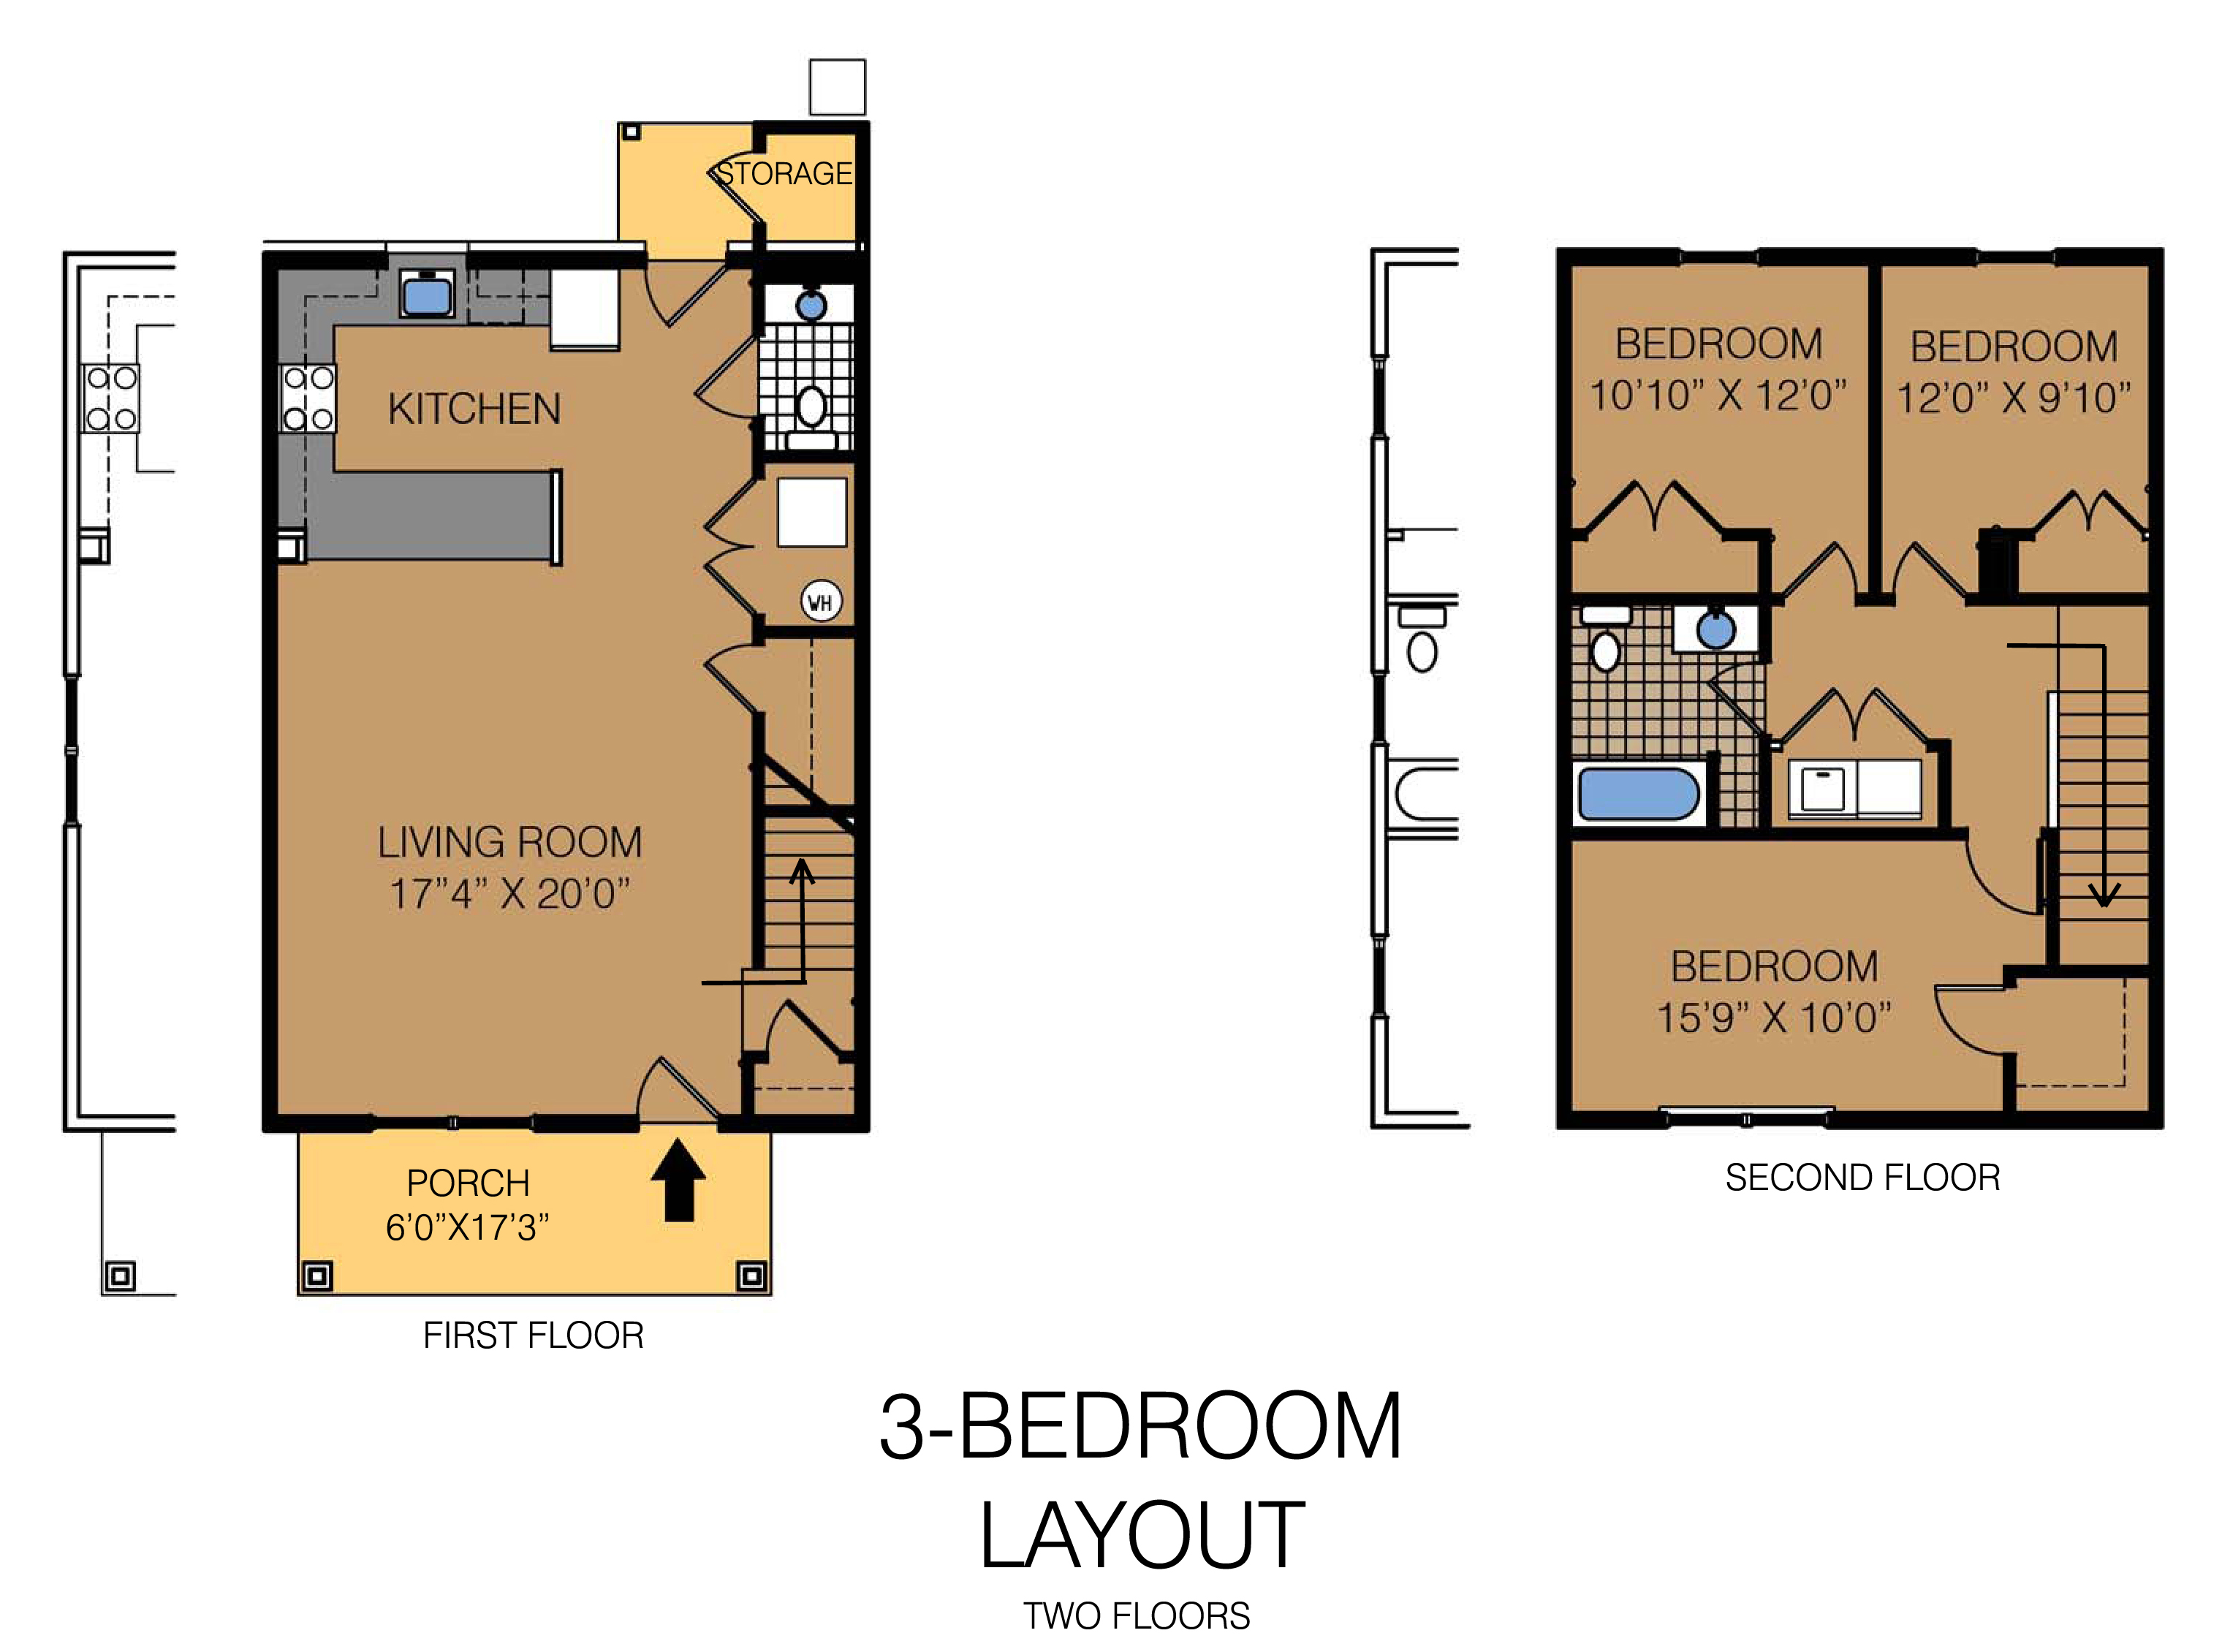 Color Layout 3 Bedroom.jpg (1)